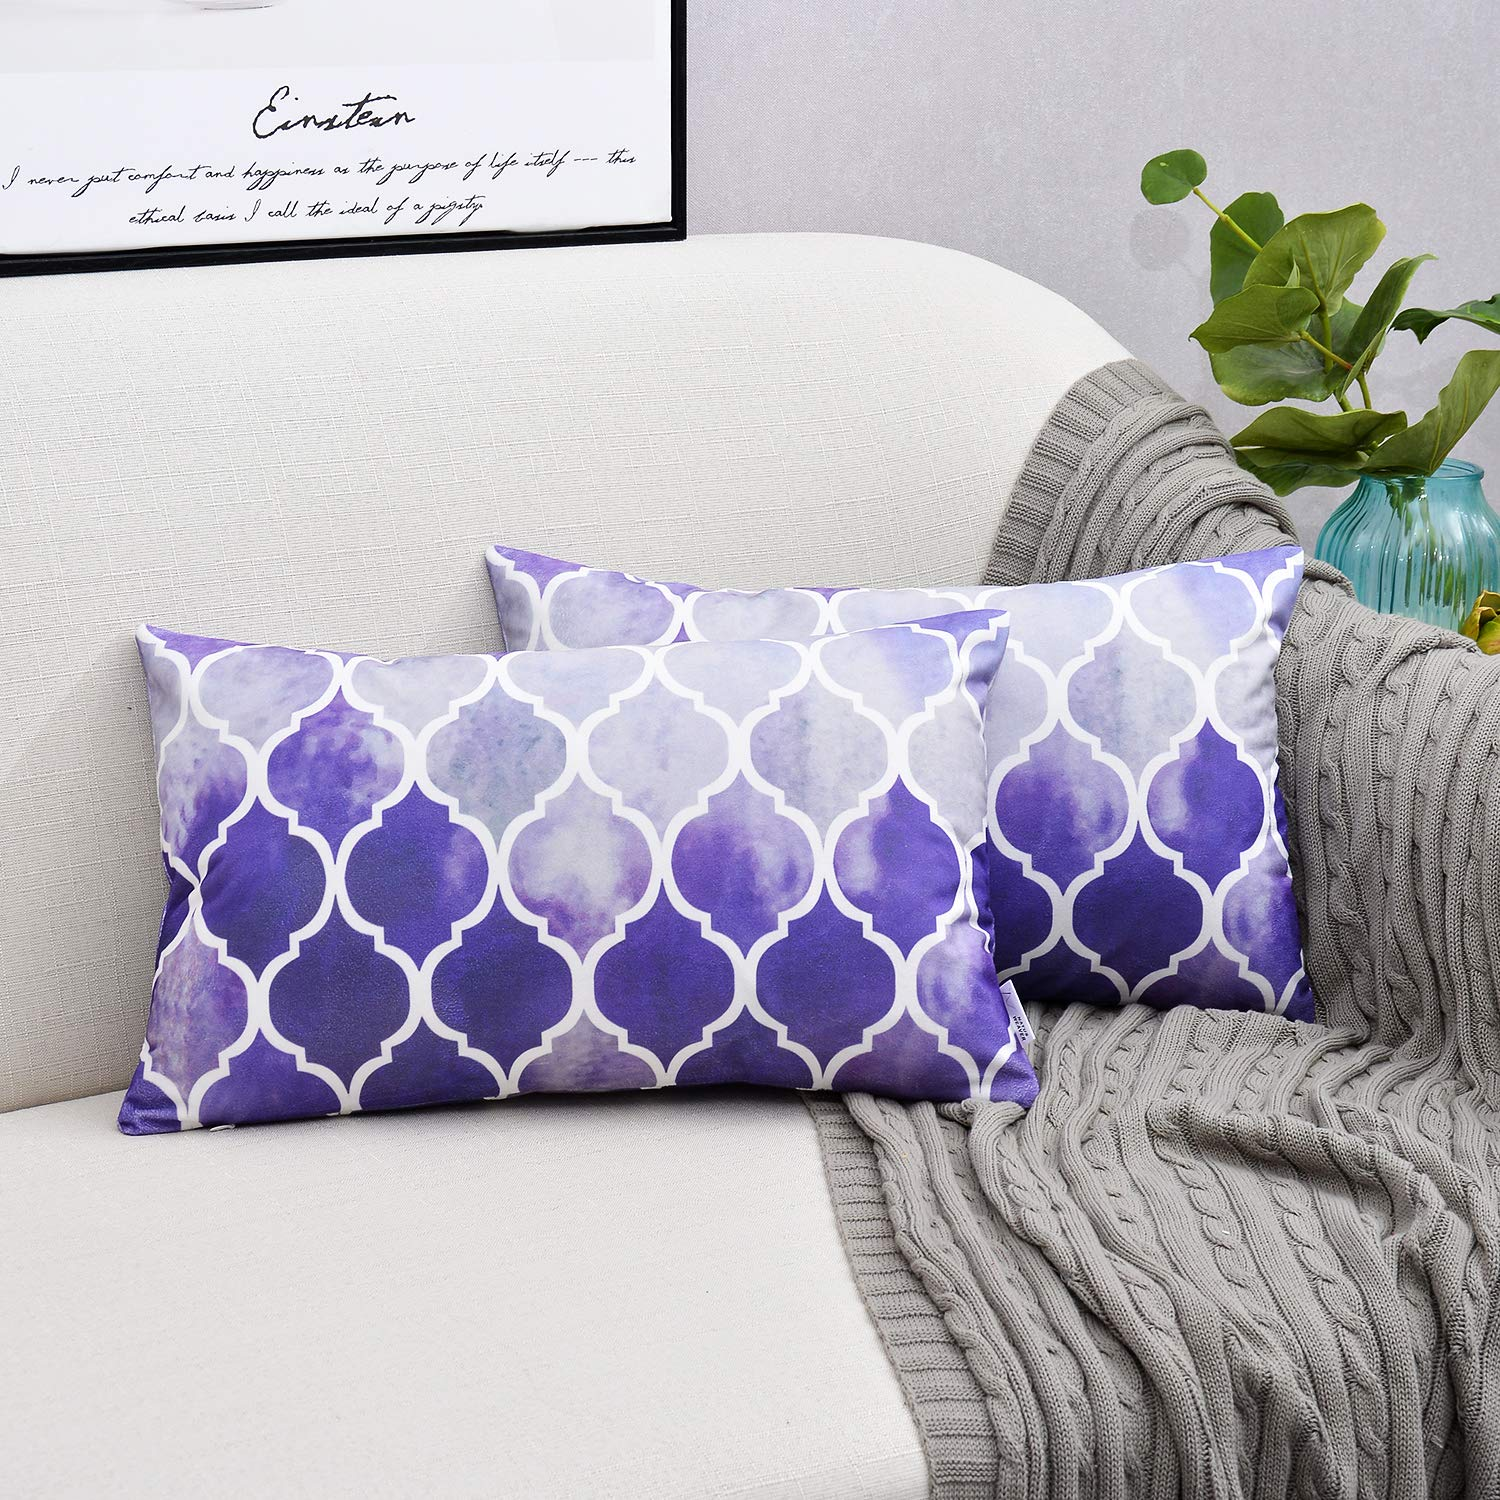 NATUS WEAVER Pack of 2 Cozy Throw Pillow Cases Covers Couch Bed Sofa Manual Hand Painted Colorful Geometric Trellis Chain Print 24 X 24 Inches Main Grey Purple Eggplant NWUSCRLX2-6060C07